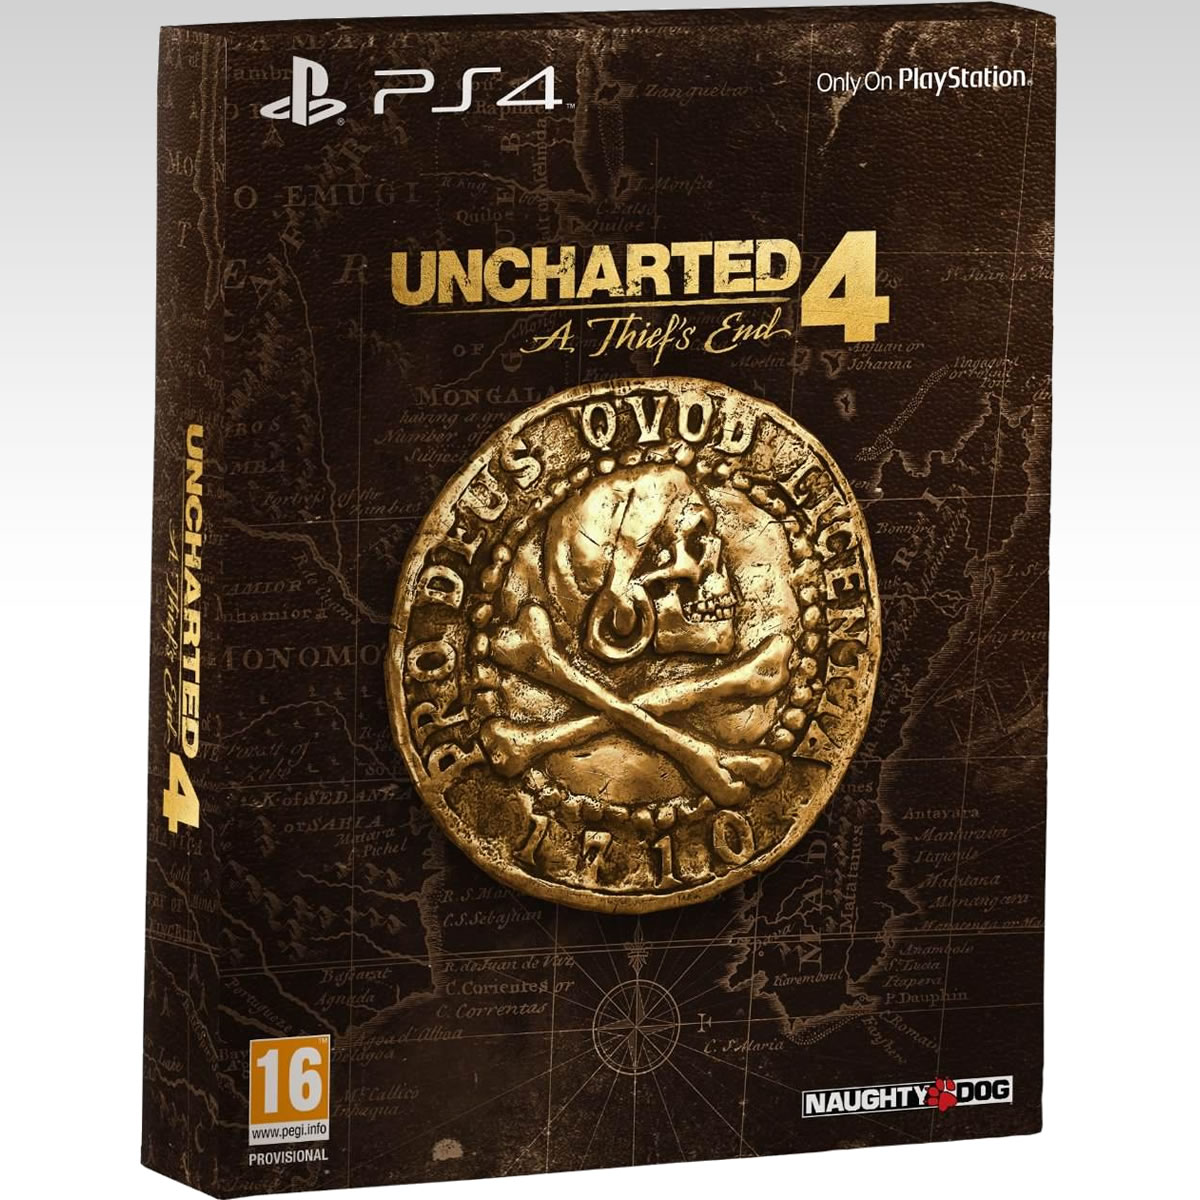 UNCHARTED 4: A THIEF'S END - UNCHARTED 4: �� ����� ���� ������ [��������] Special Edition Steelbook (PS4)